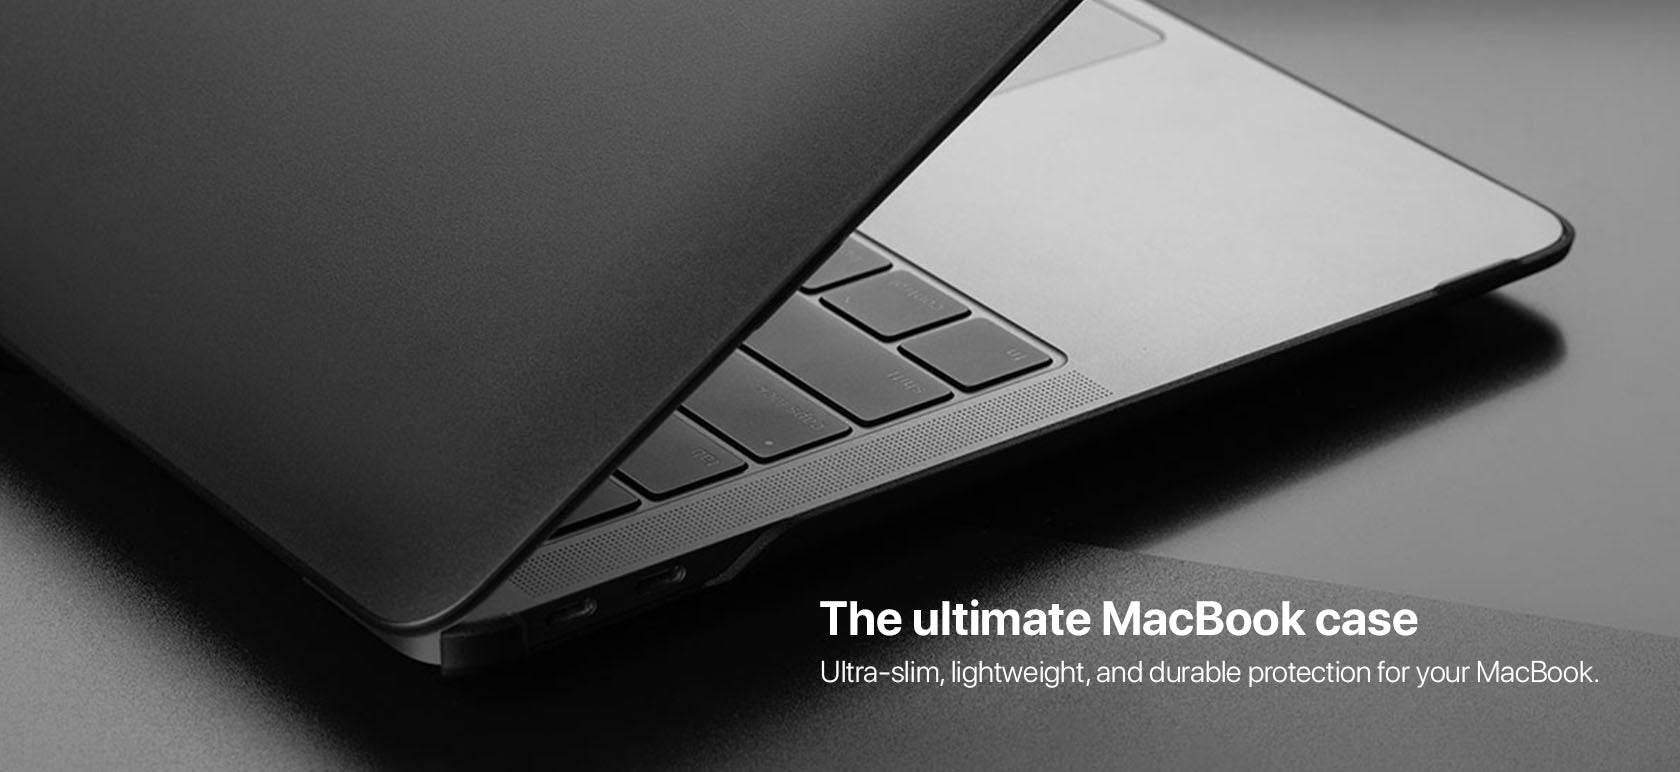 The ultimate MacBook case Ultra-slim, lightweight, and durable protection for your MacBook.